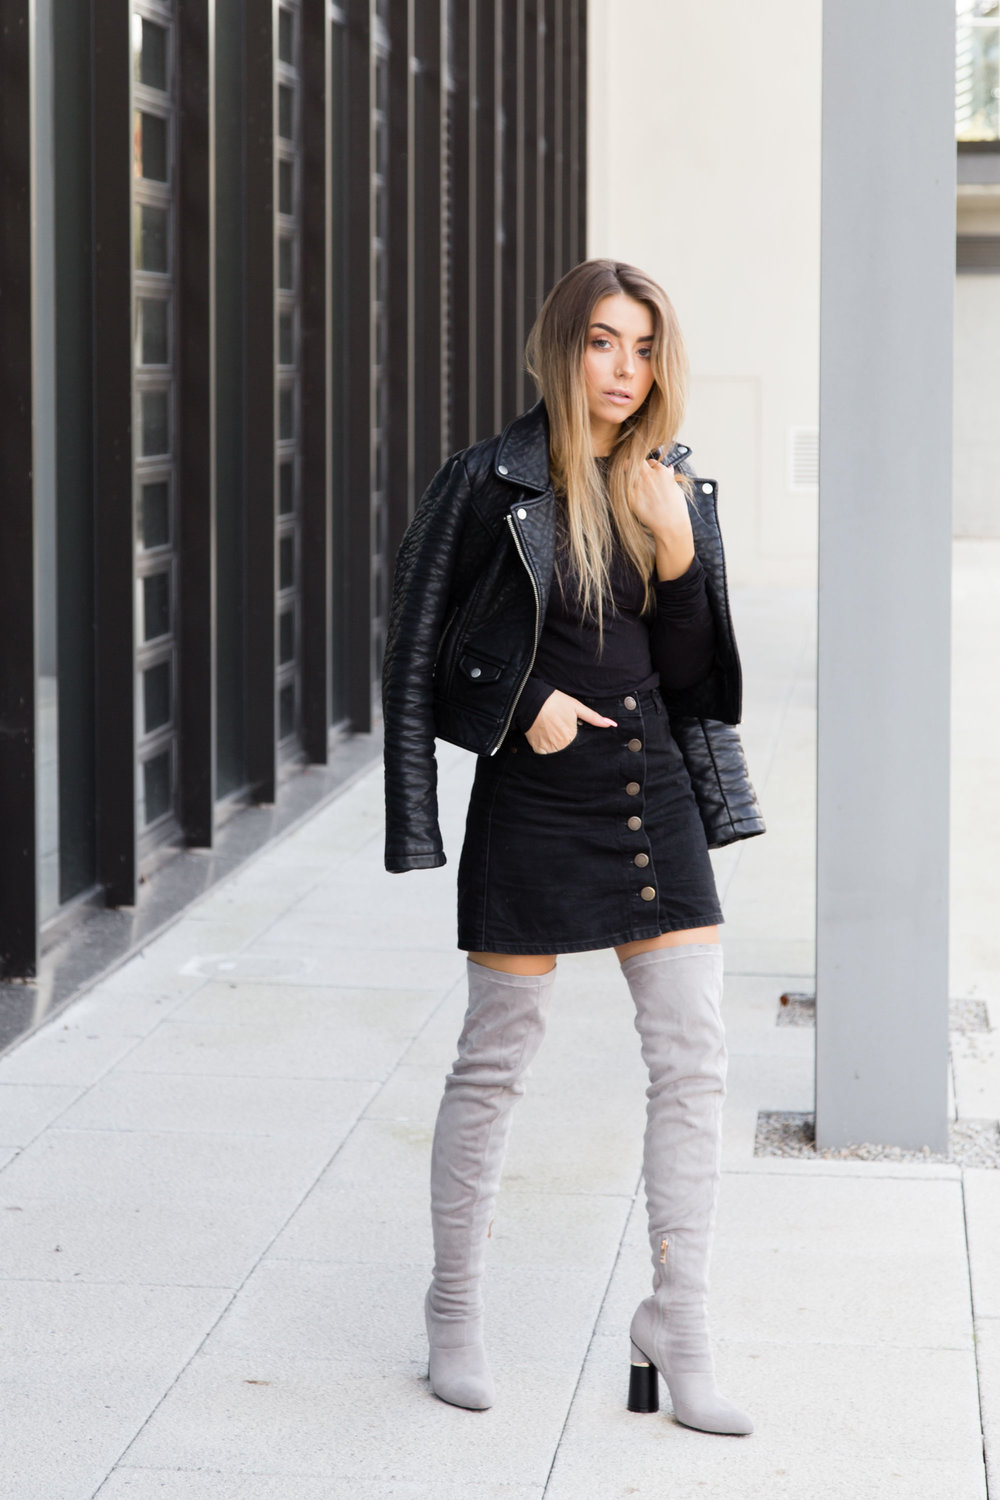 How to style knee high boots